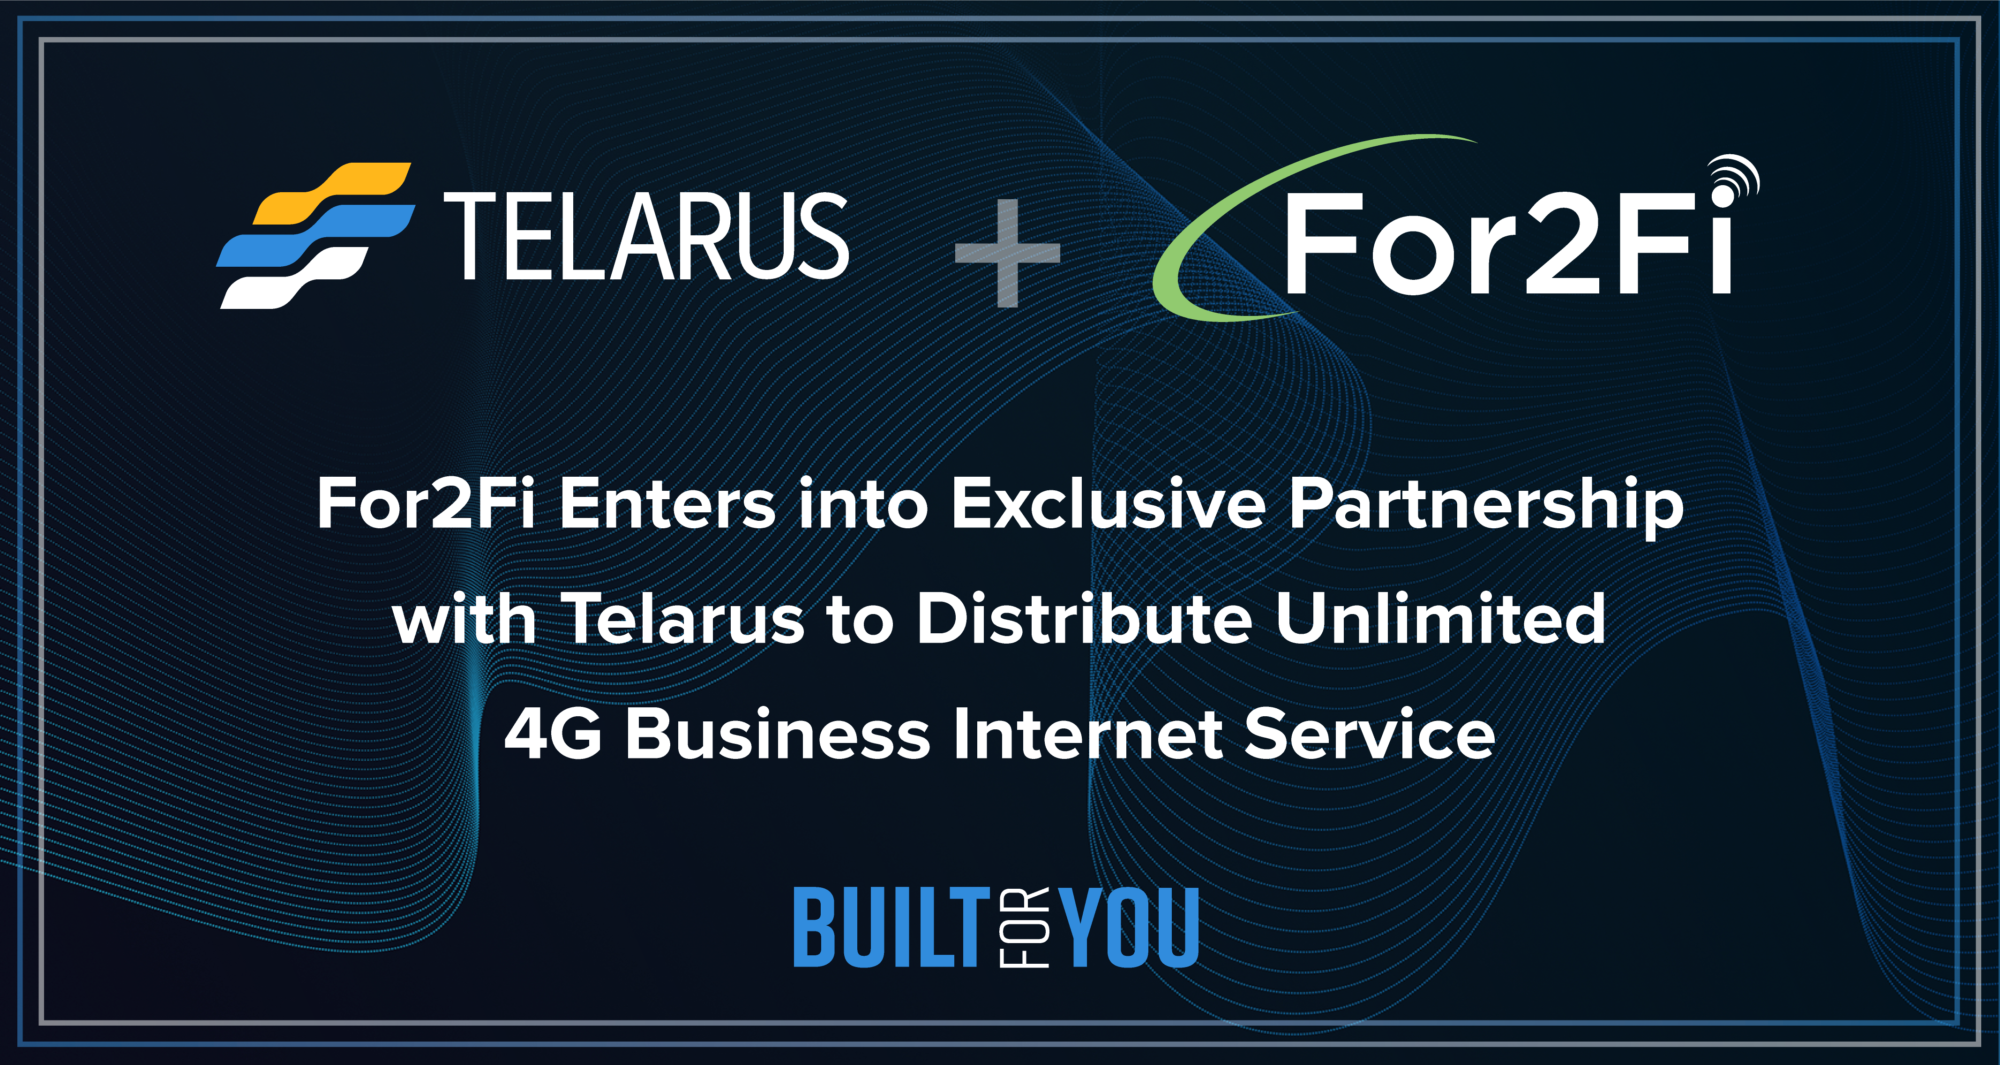 For2Fi Enters into Exclusive Partnership with Telarus to Distribute Unlimited 4G Business Internet Service